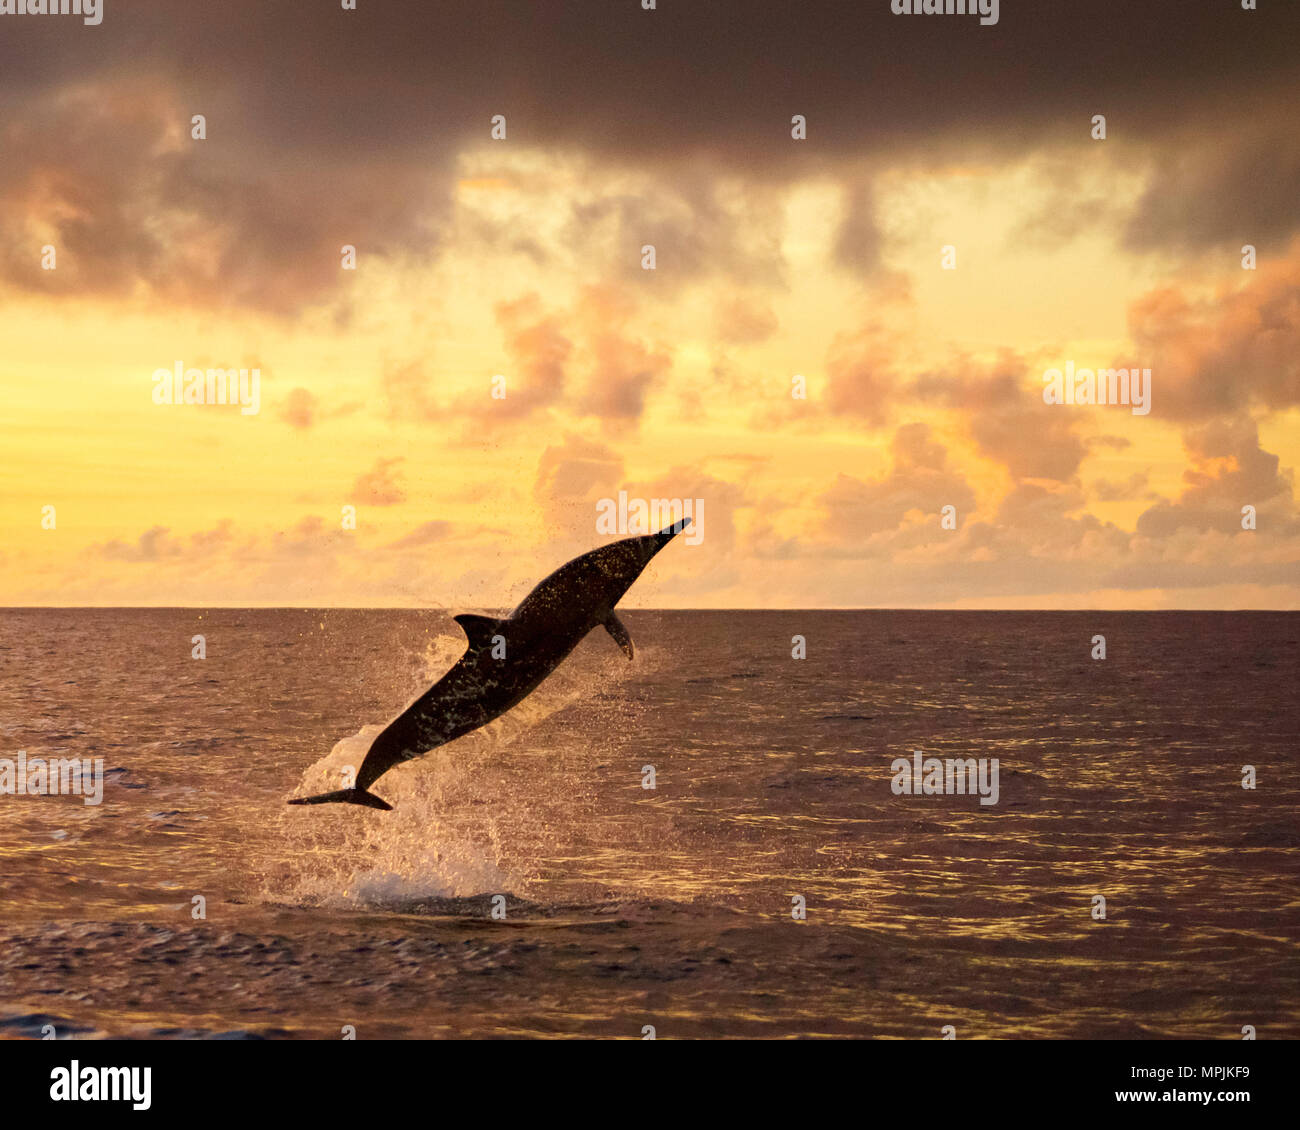 spinner dolphin, Stenella longirostris, jumping, leaping, at sunset, silhouette, Chichi-jima, Bonin Islands, Ogasawara Islands, UNESCO World Heritage  - Stock Image